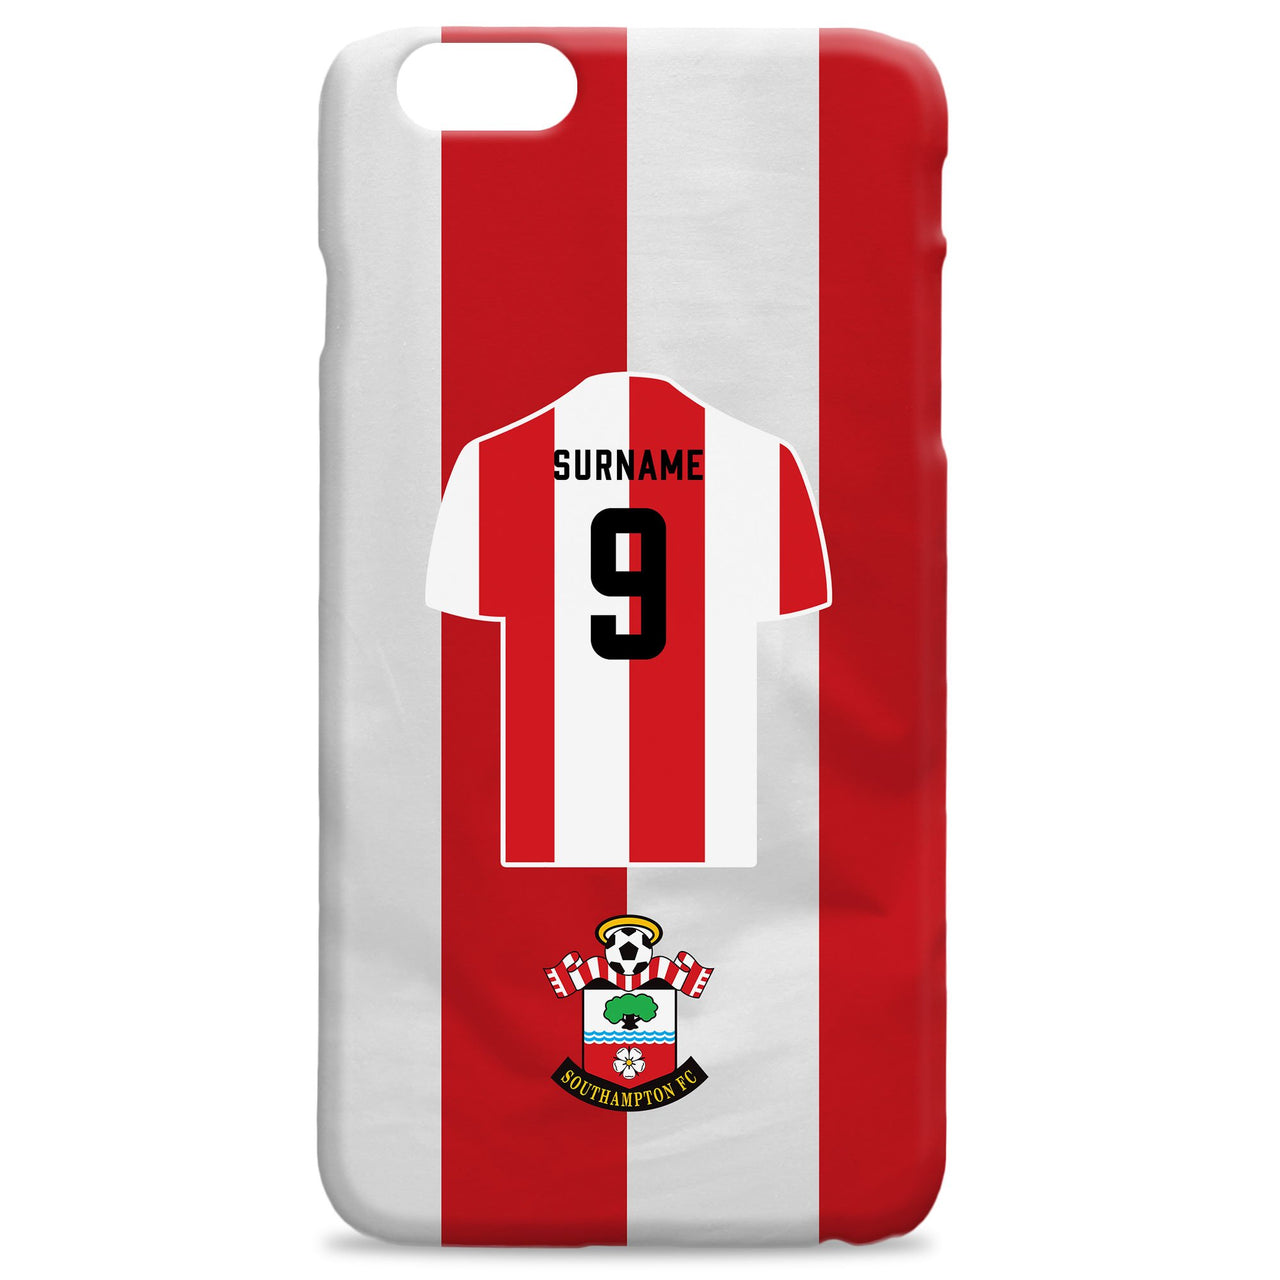 Southampton FC Shirt Hard Back Phone Case, Gifts